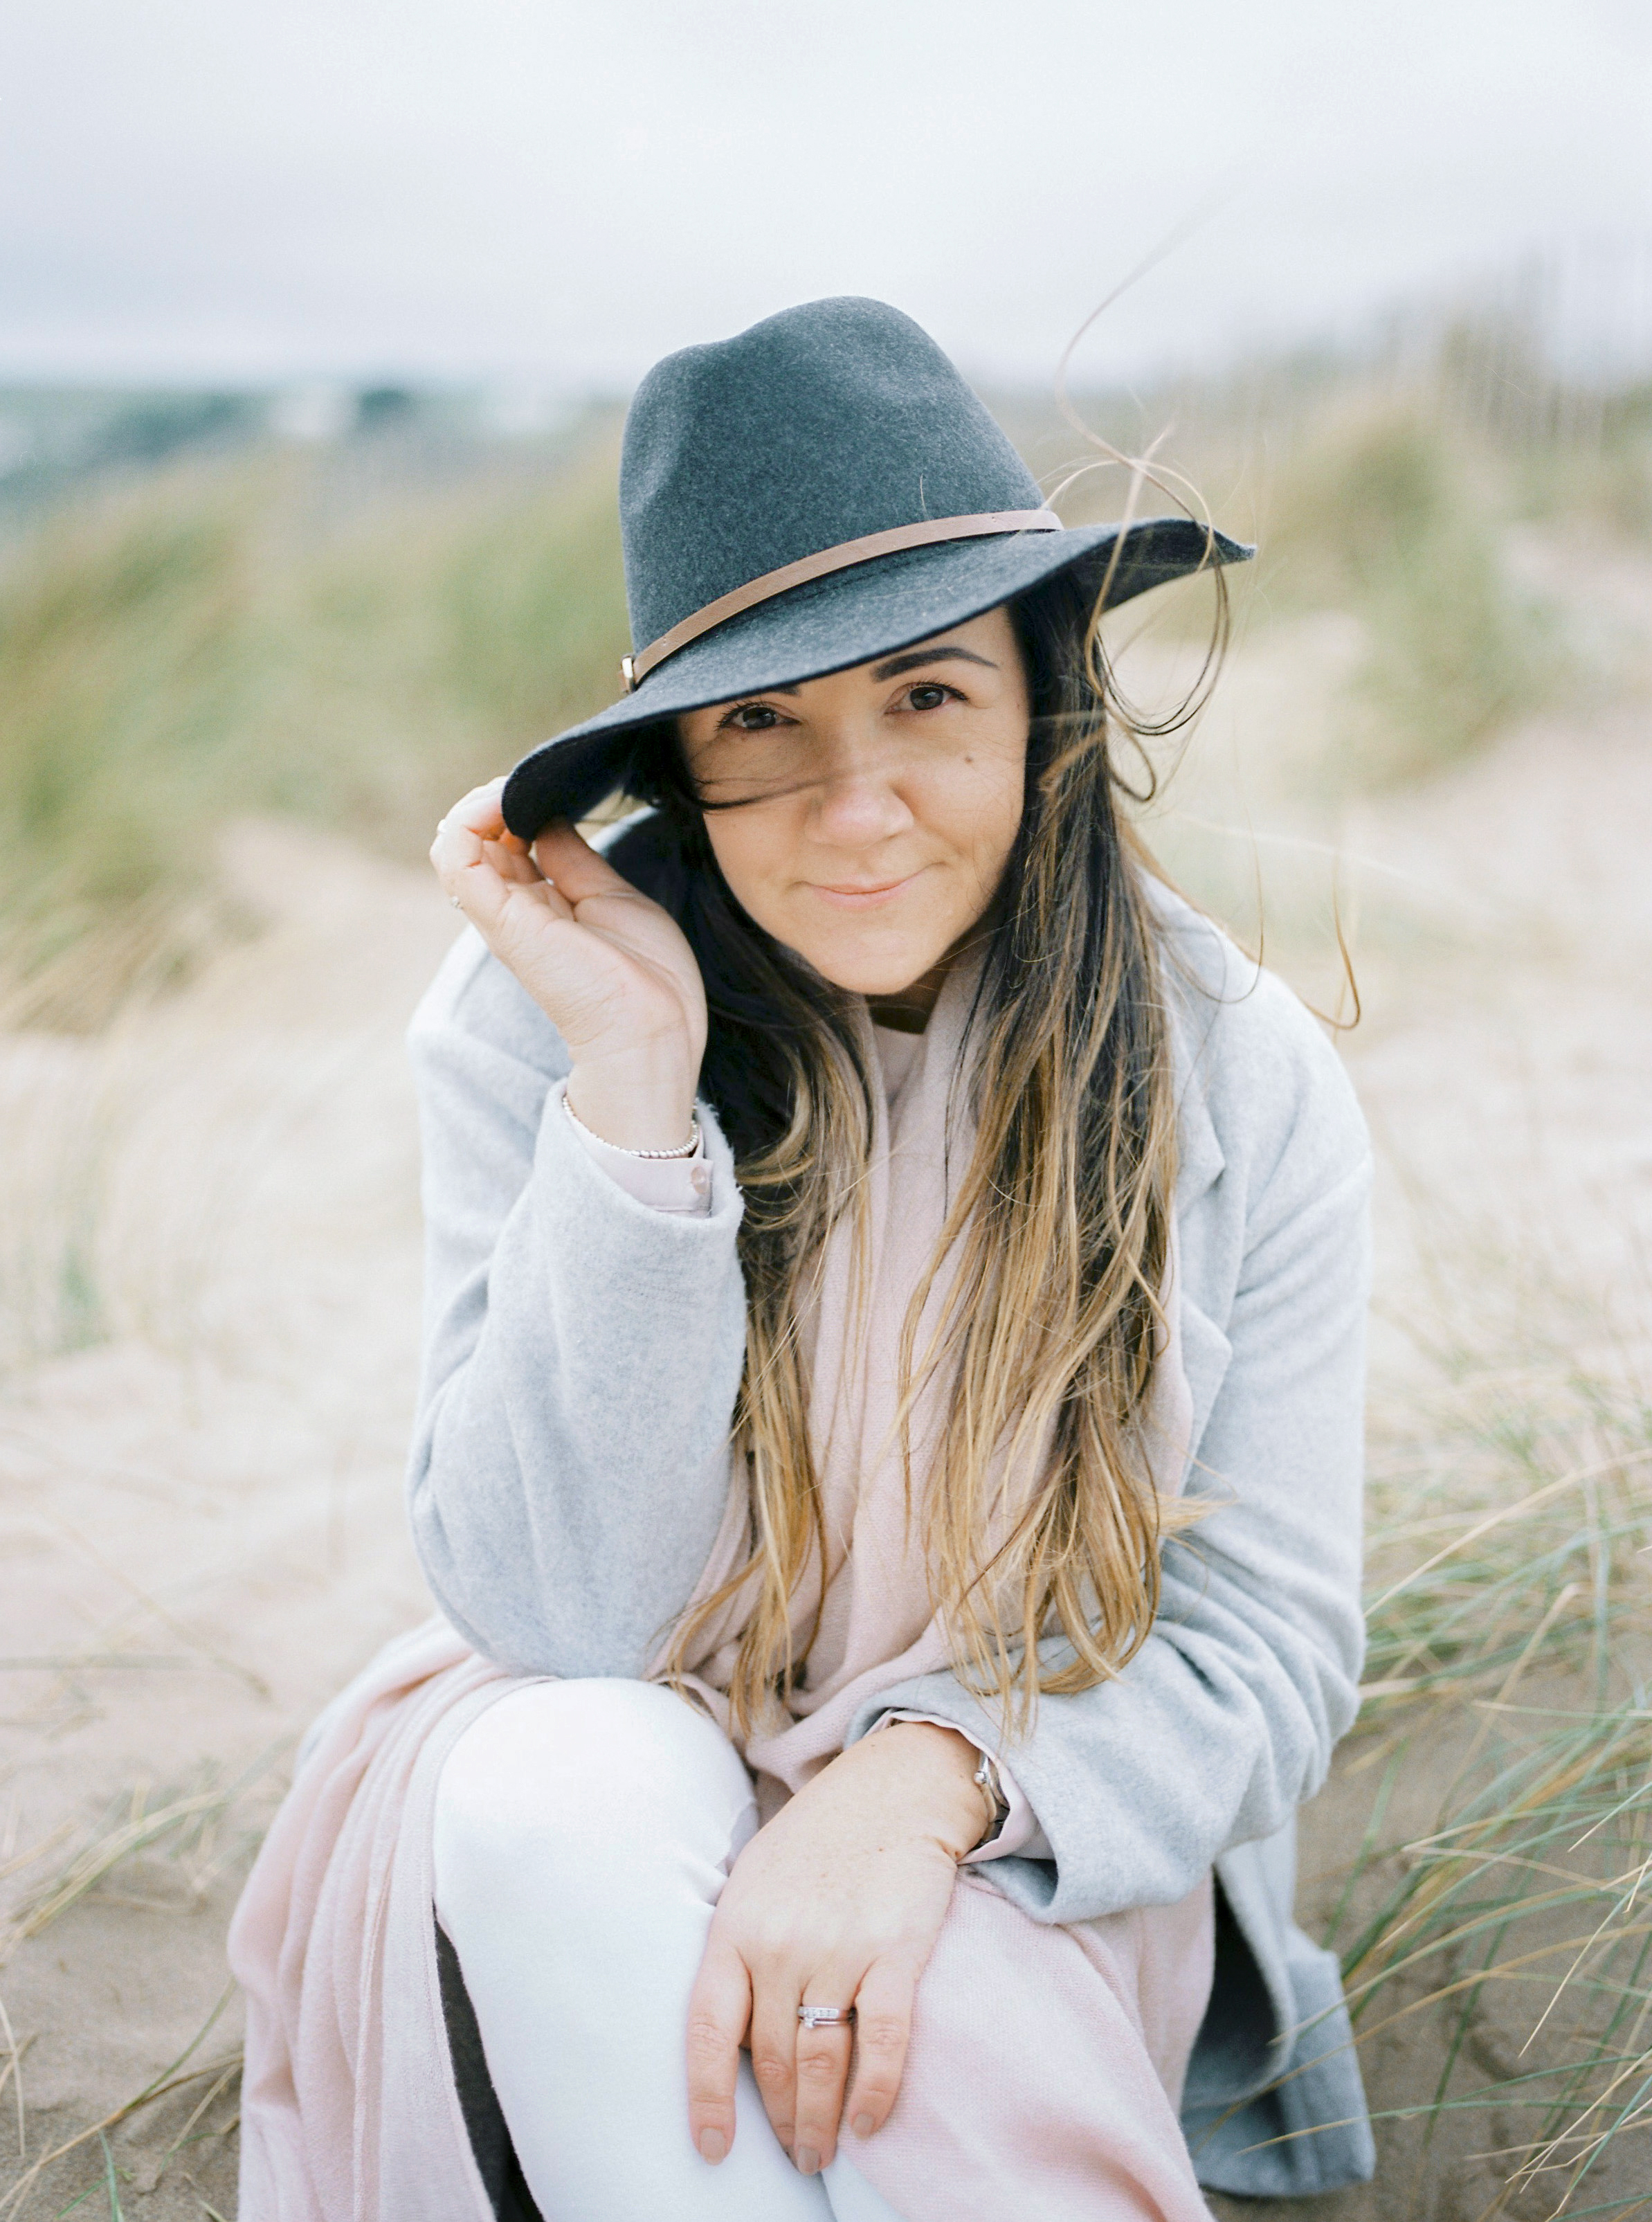 About Katy Jones - I'm a Devon based Photographer (that's me in the hat), living just south of Exeter by the seaside. It's a privilege for me to document moments in your lives. To be a part of something special just for a brief moment in time. I love what I do; getting to know you, making connections and of course shooting photos.I like fresh coffee and new shoes, stationery and organising stuff and I'm obsessed with succulents. I love feeling sand between my toes, getting the giggles with my daughter and being inspired to travel and try new things.I don't like cheesy poses or making anyone feel awkward. I also don't like coriander or magic tricks. I'm not even sorry.If any of this is a bit of you, drop me a line. I'd love to hear from you!Photo credit | Irena K